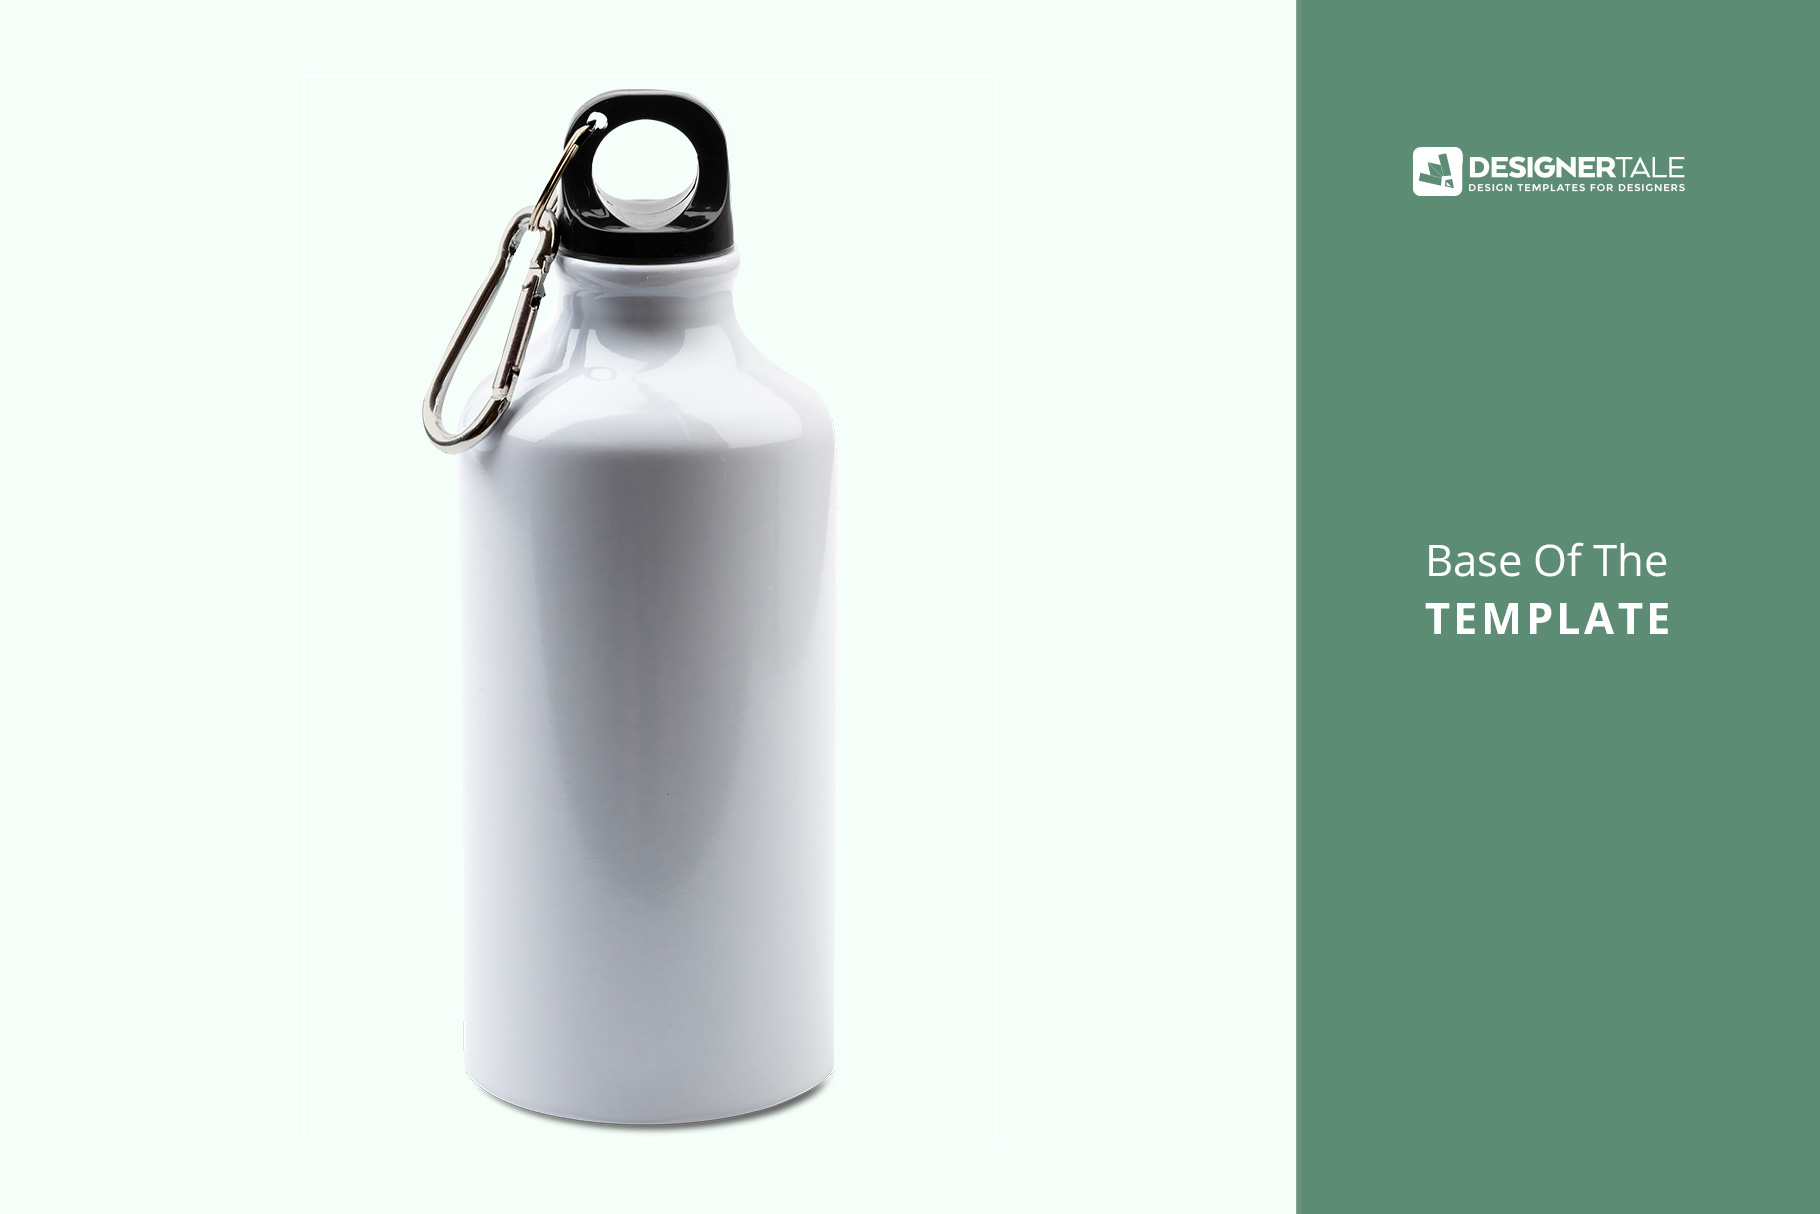 base image of the stainless sports water bottle mockup